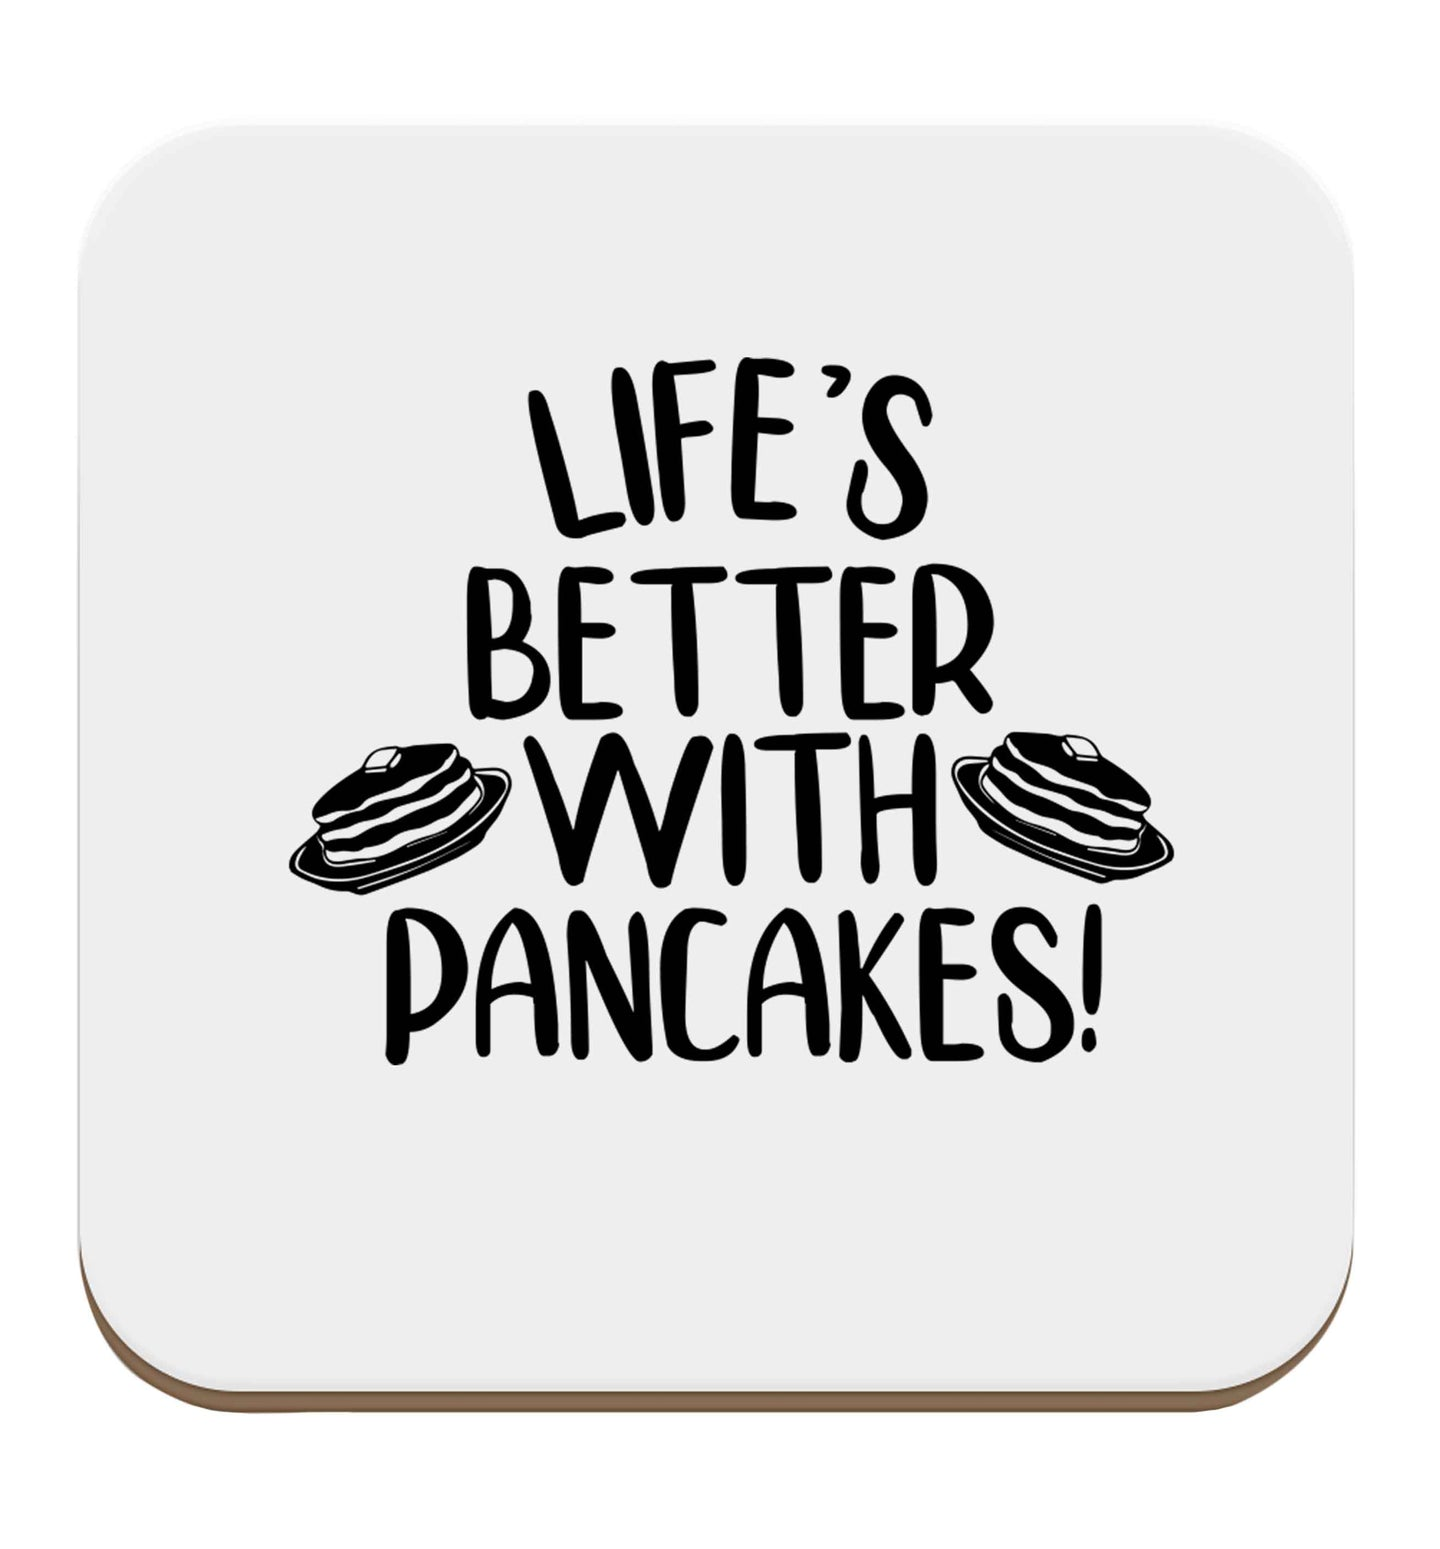 Life's better with pancakes set of four coasters